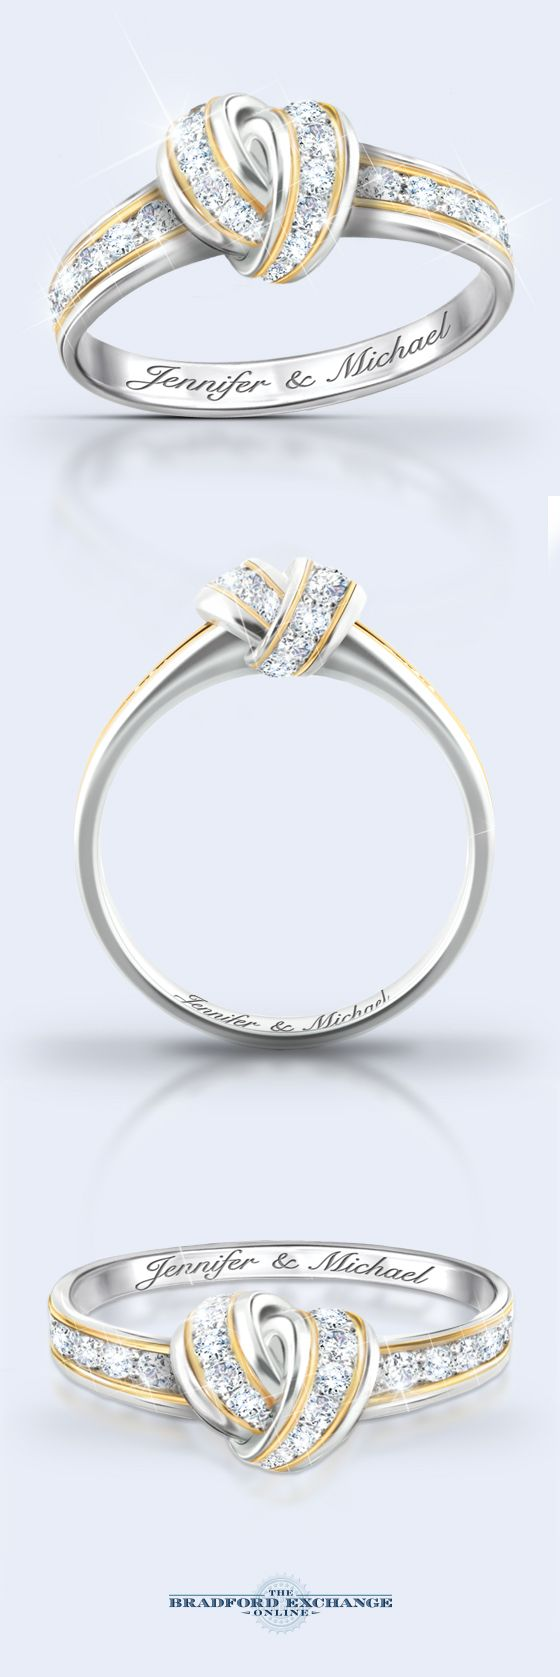 The love knot symbolizes your forever bond perfectly! That iconic symbol is blended seamlessly into the design of this personalized diamond ring. 12 sparkling diamonds create an unparalleled dazzle and your 2 names are engraved for free inside the band. Visit our site to preview your names and personalize this romantic ring today. I gotta get this. Beautiful